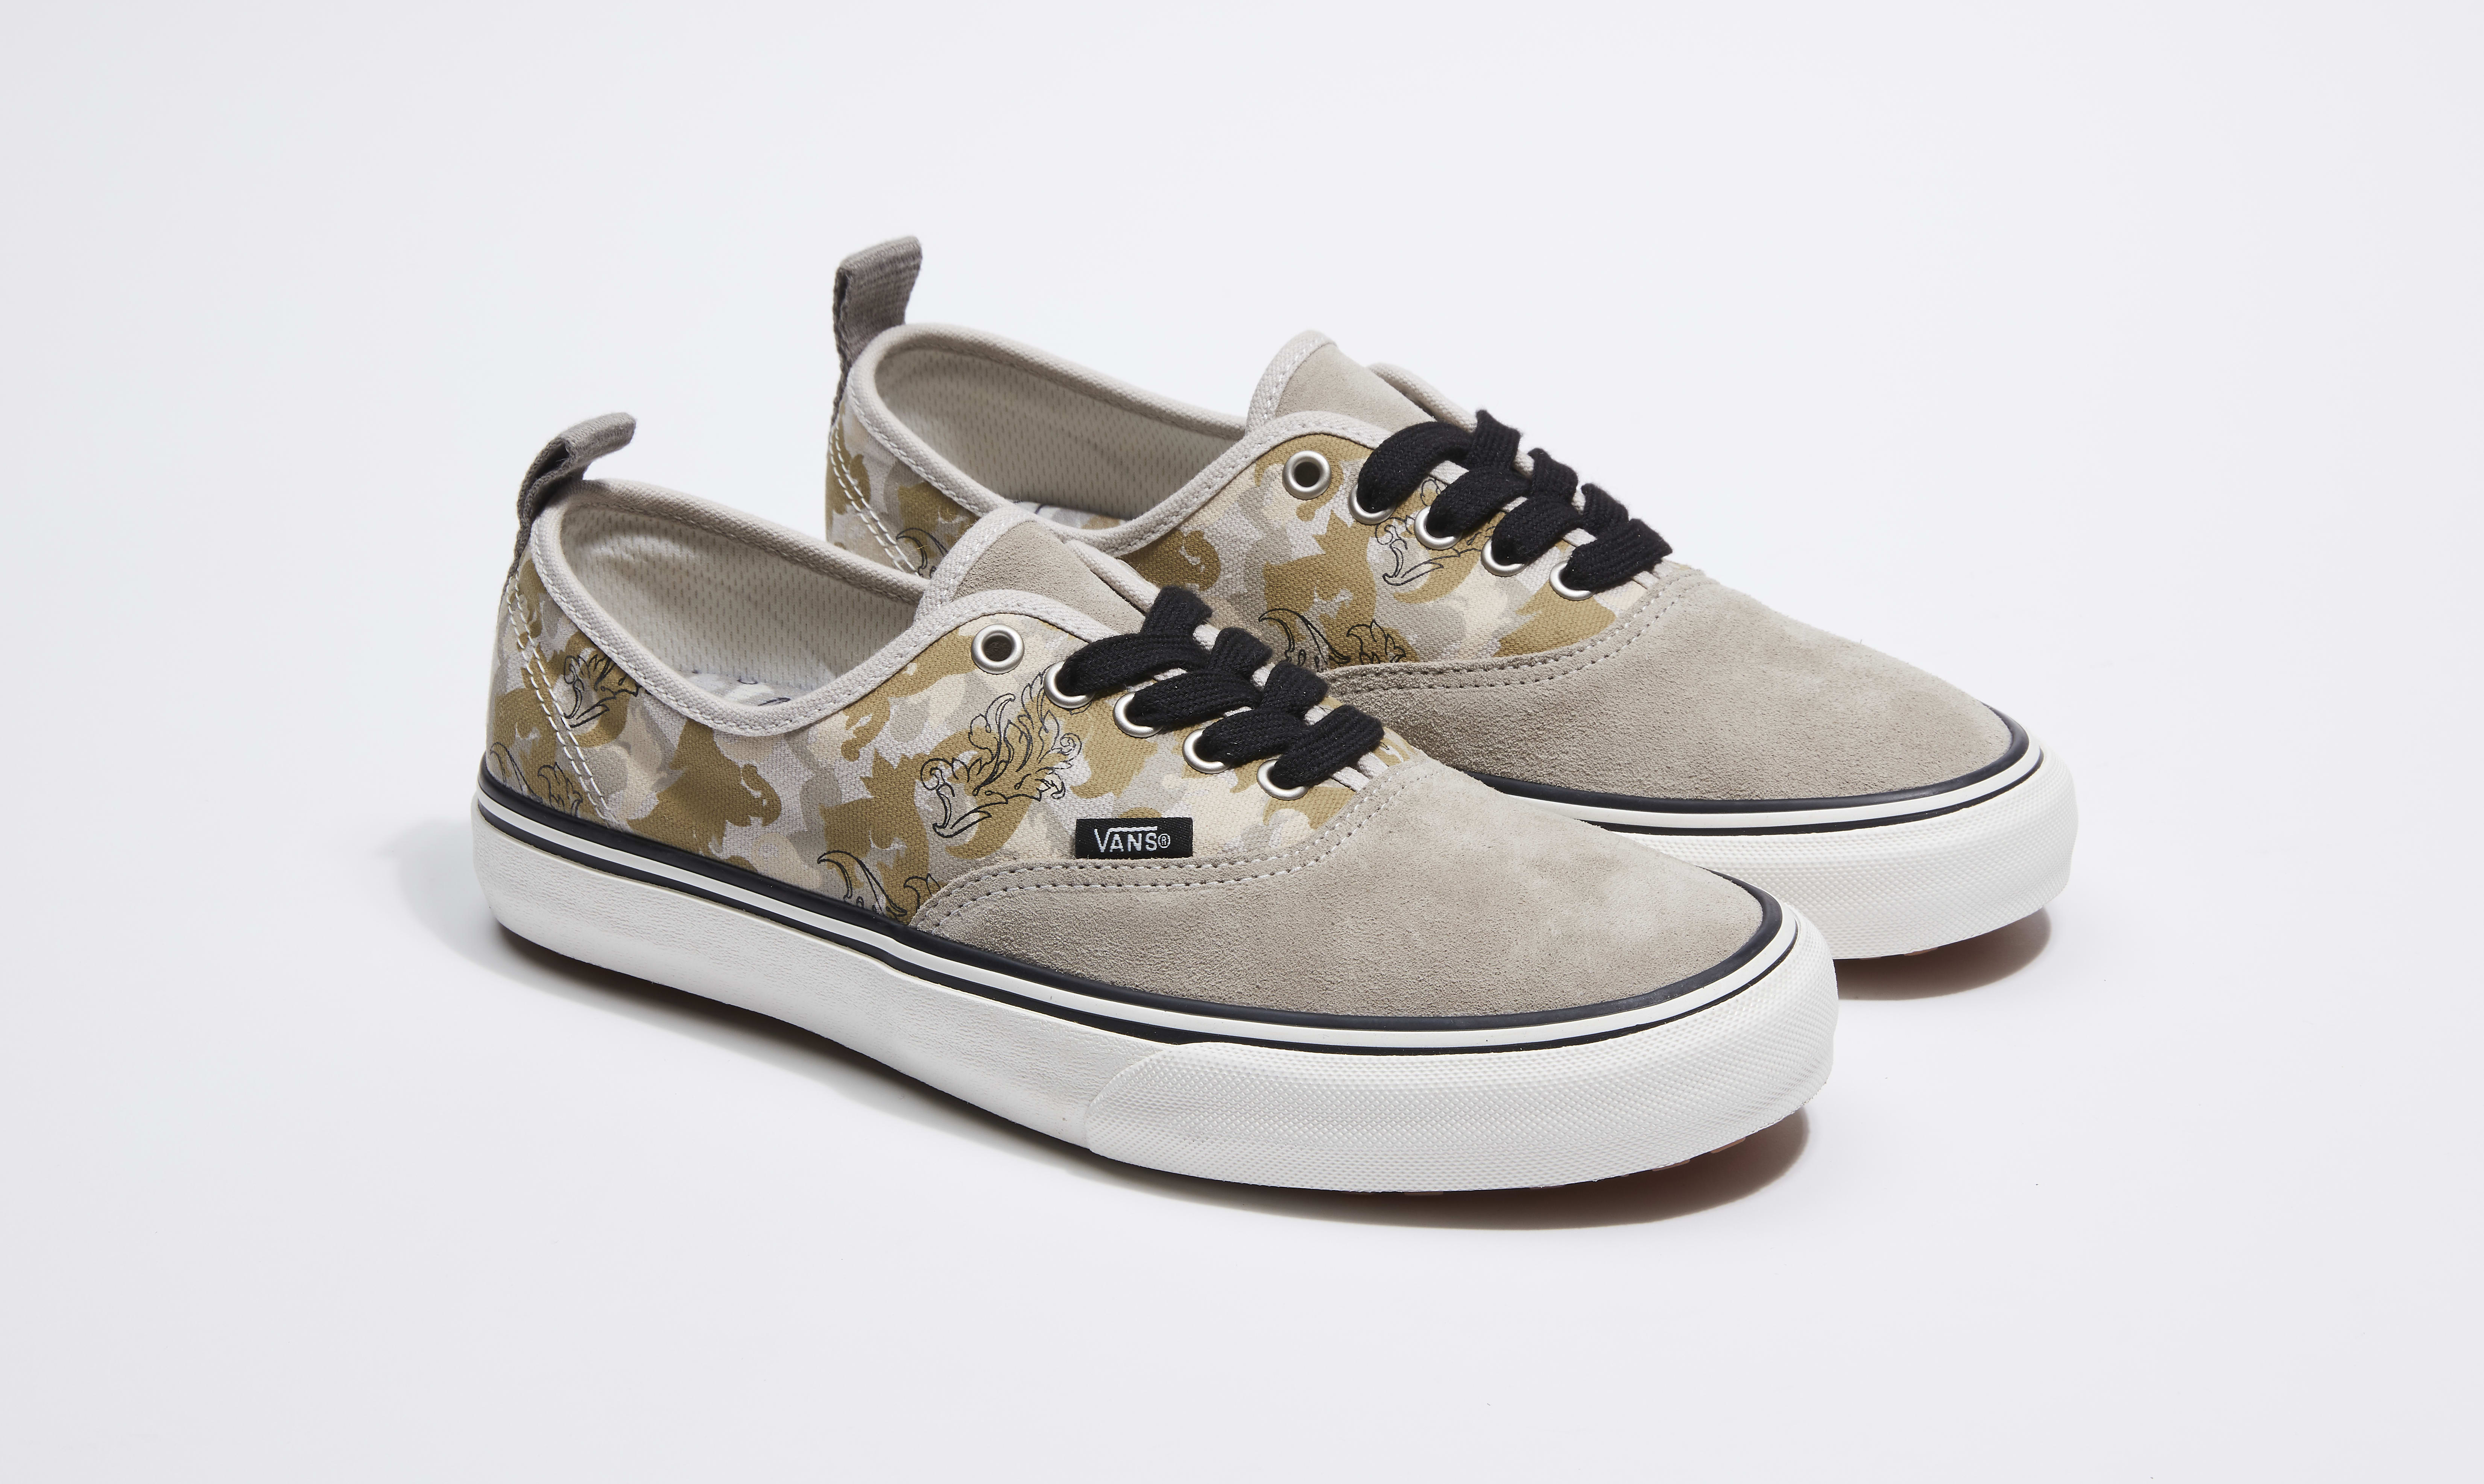 BJ Betts x Vans Authentic 'Made for the Makers' Collab